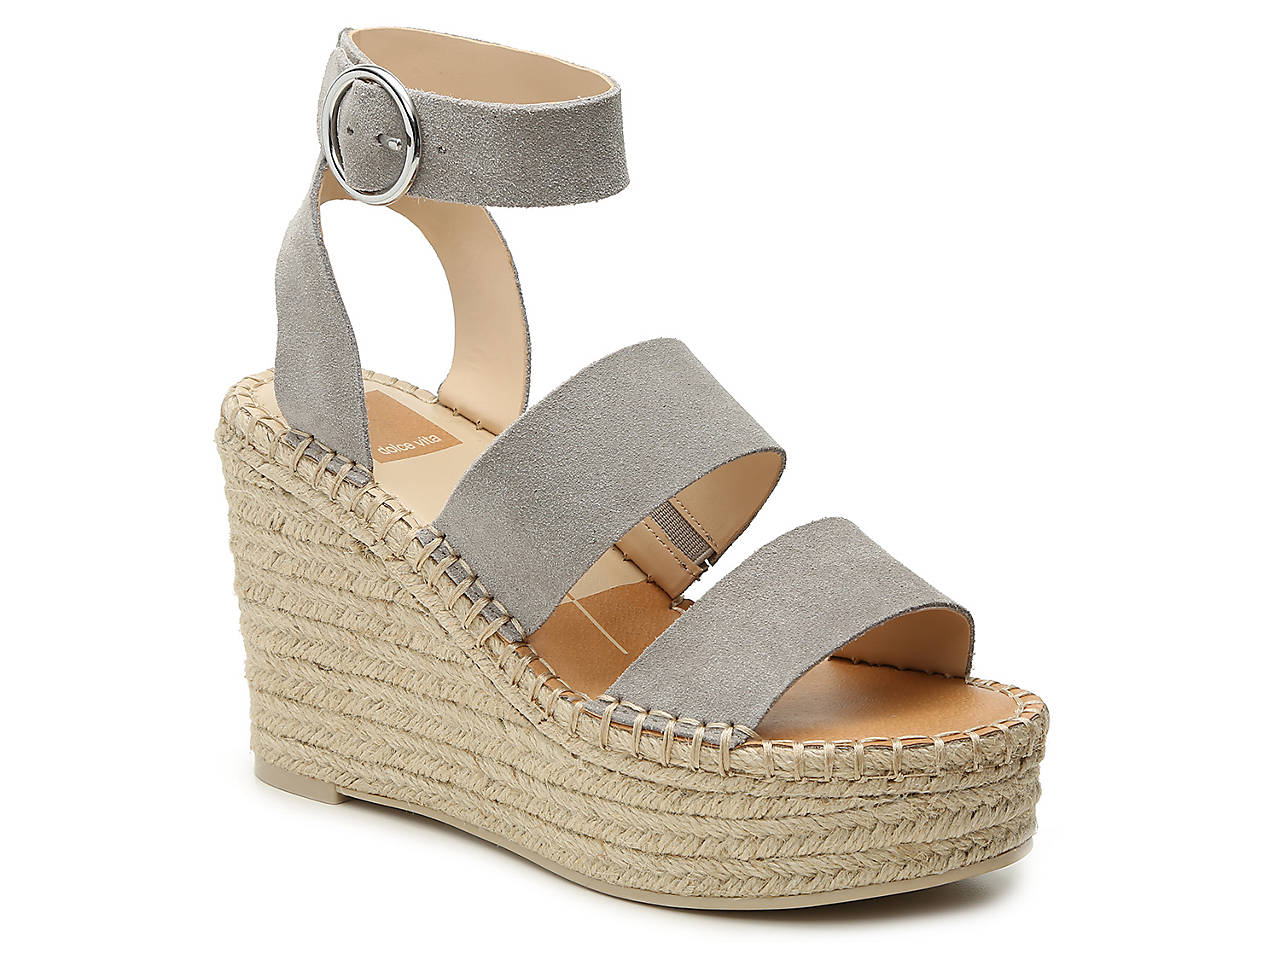 4f889c62b20d Dolce Vita Shae Espadrille Wedge Sandal Women s Shoes